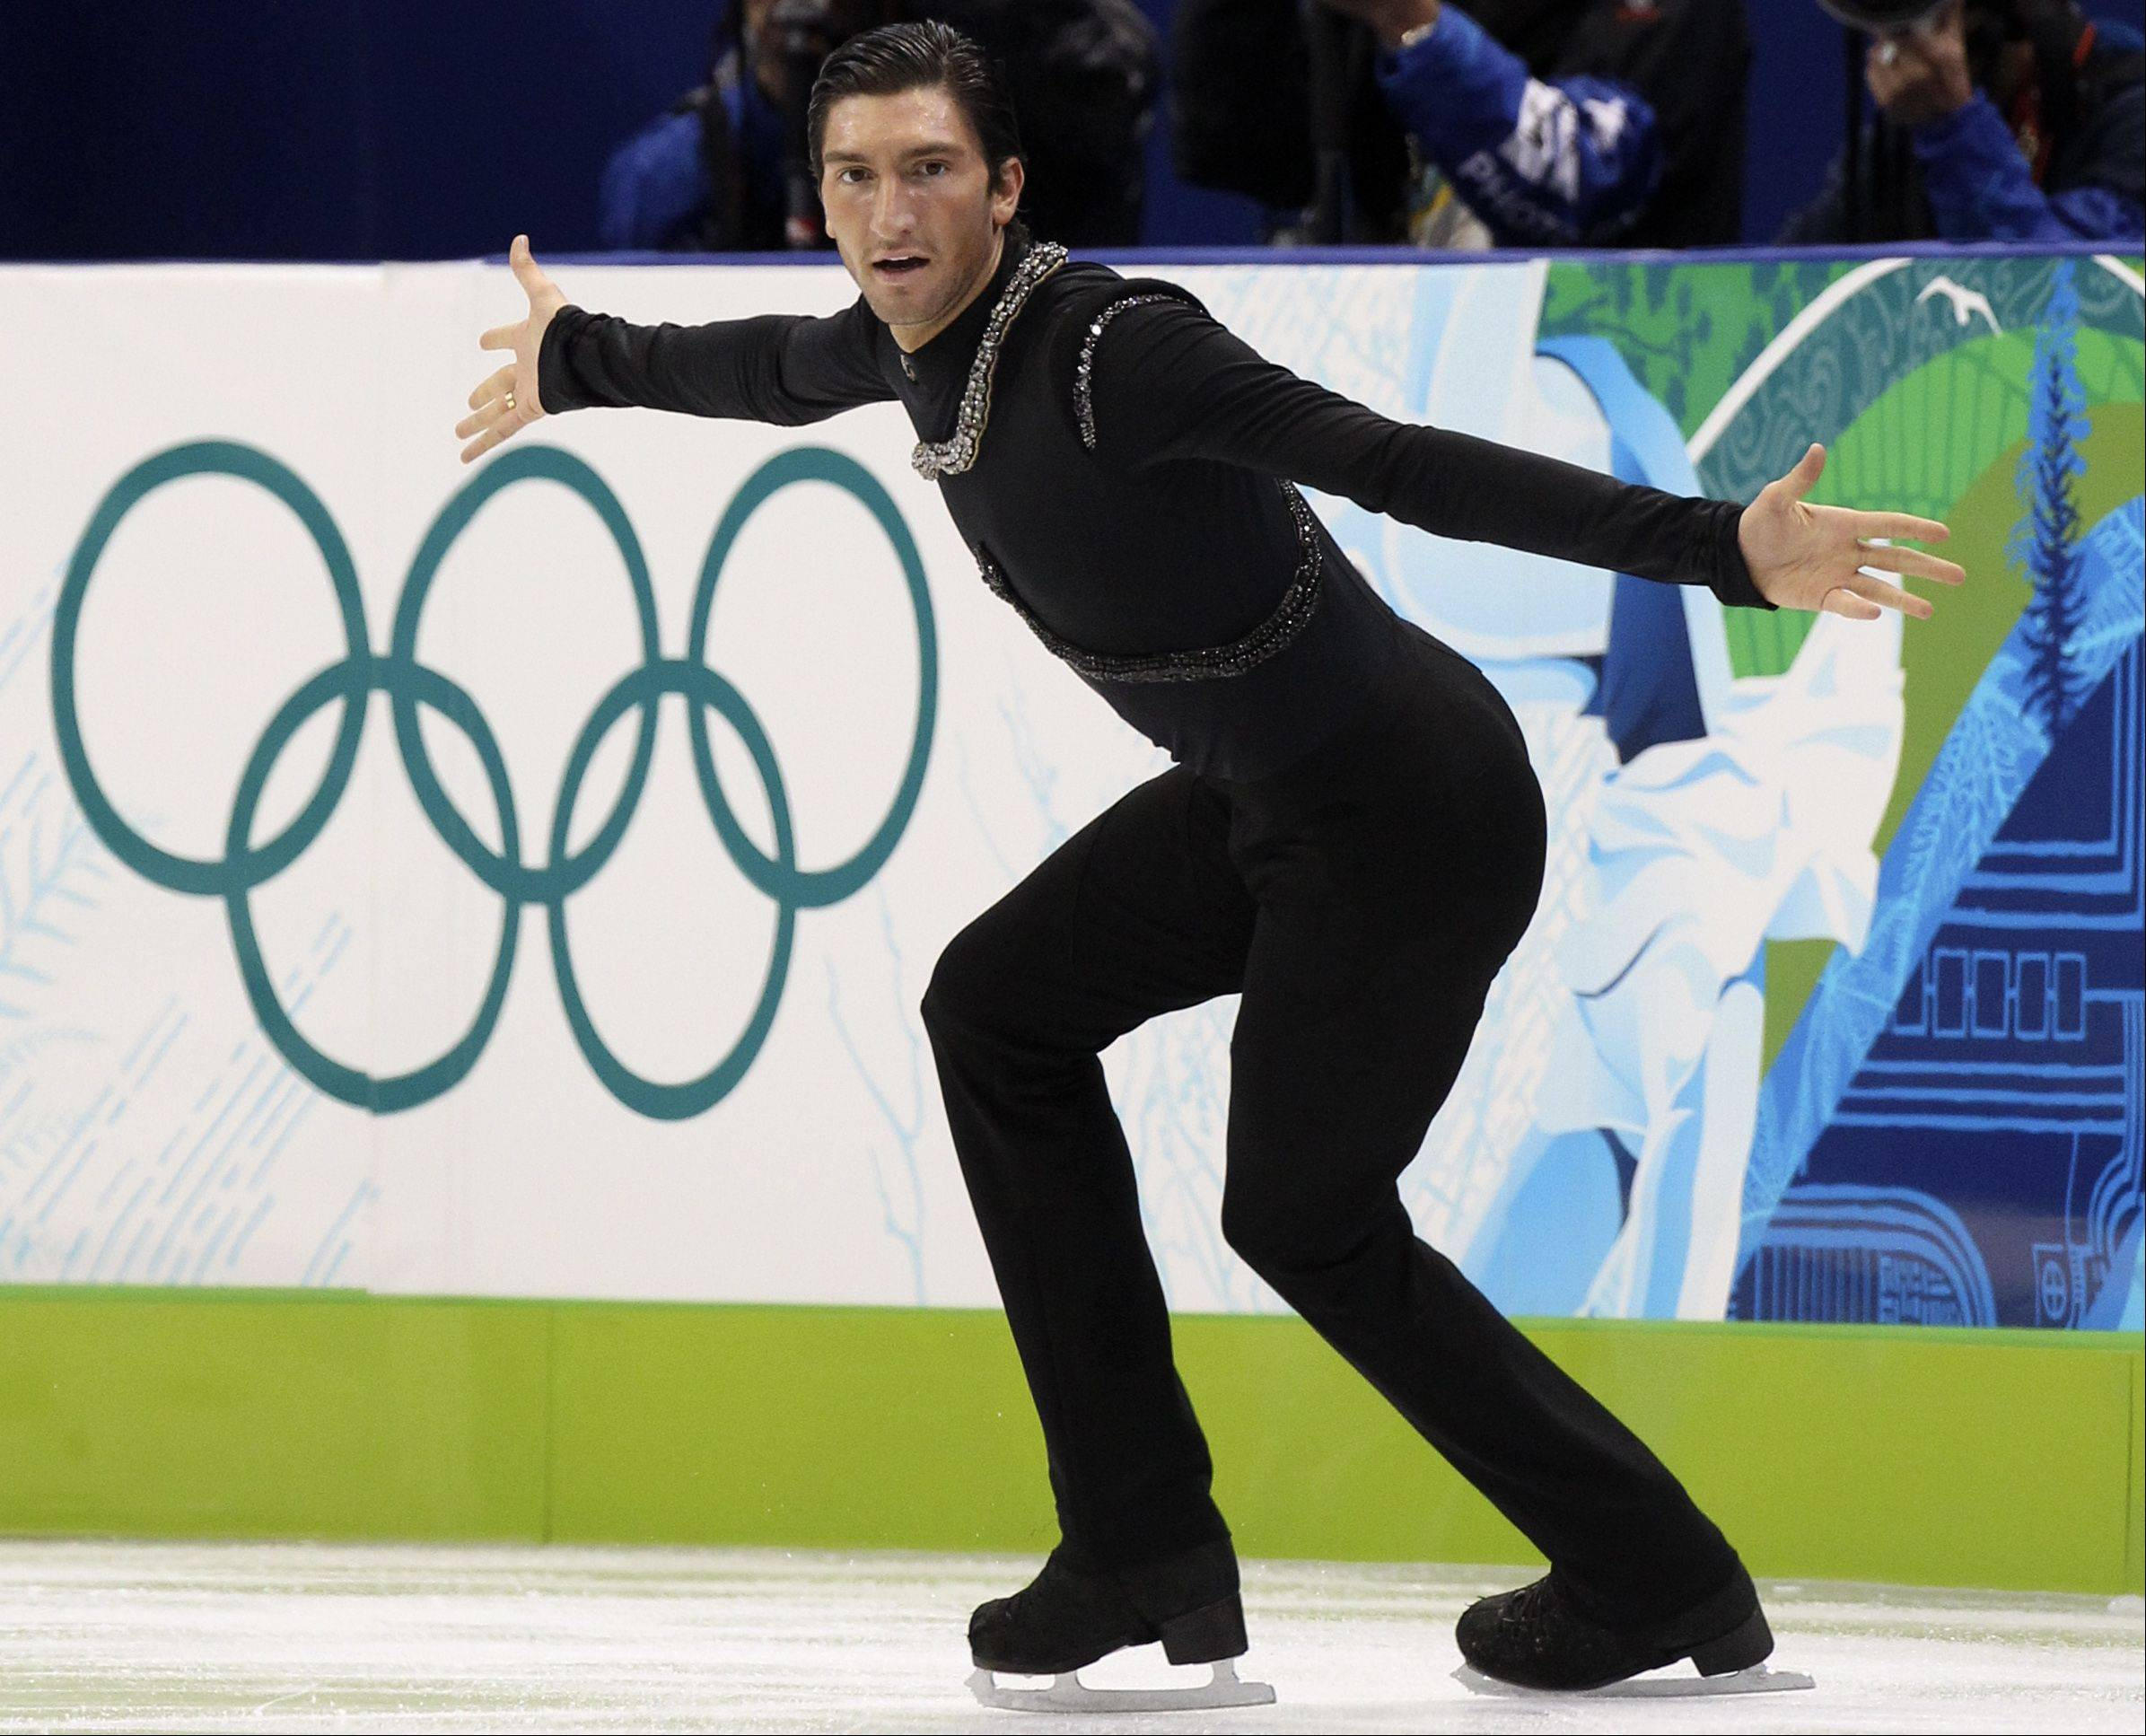 Evan Lysacek performs during the men�s figure skating competition at the 2010 Olympics in Vancouver, British Columbia.